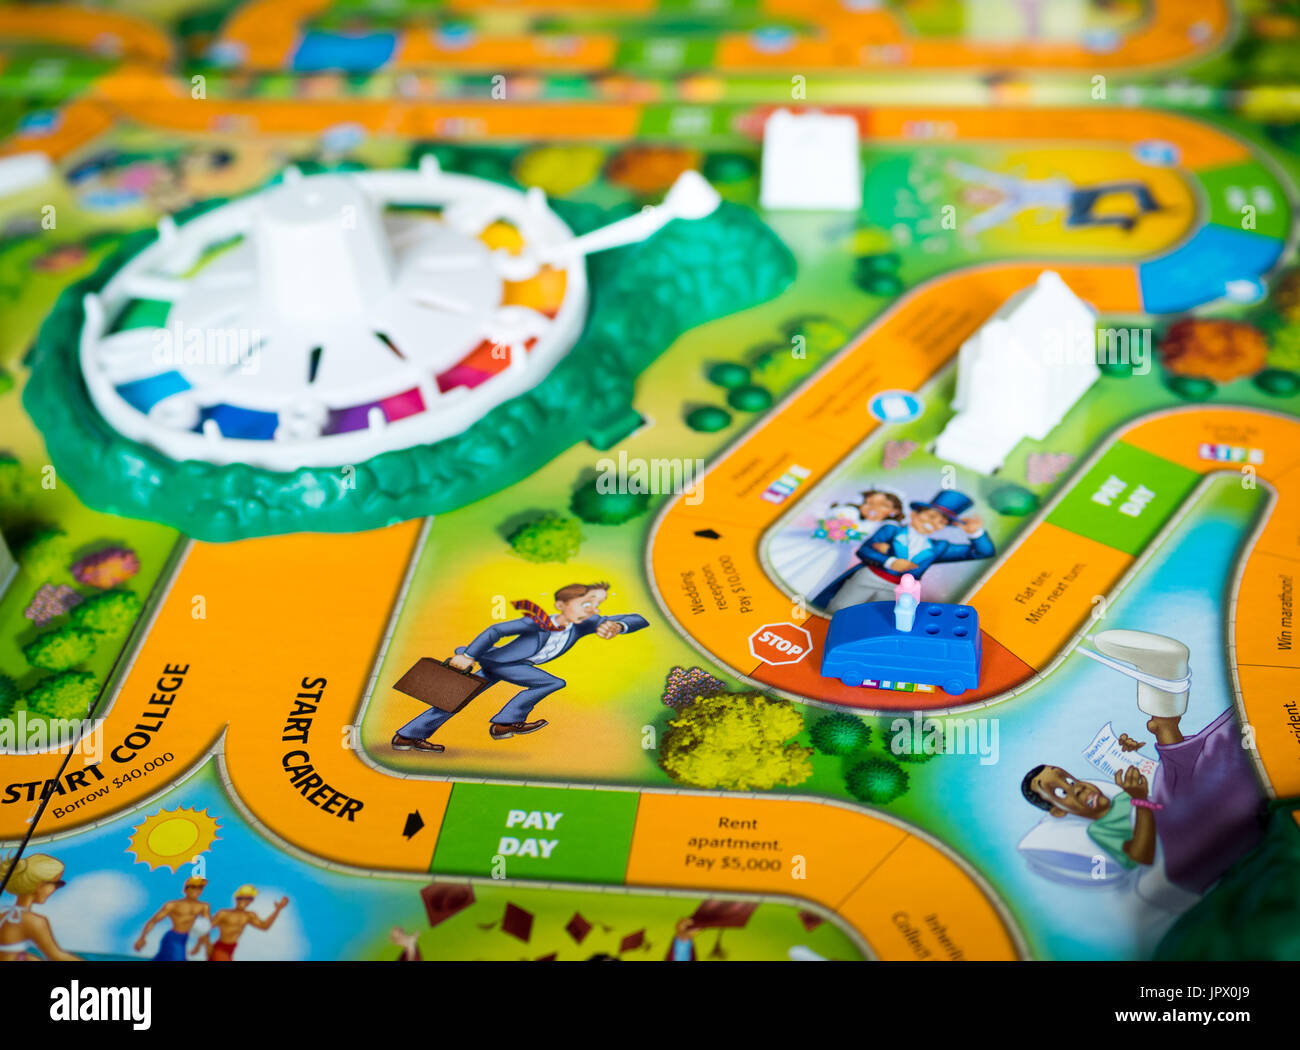 Game Of Life Board Spinning Wheel Stock Photos   Game Of Life Board     A view of The Game of Life  also known as LIFE   a board